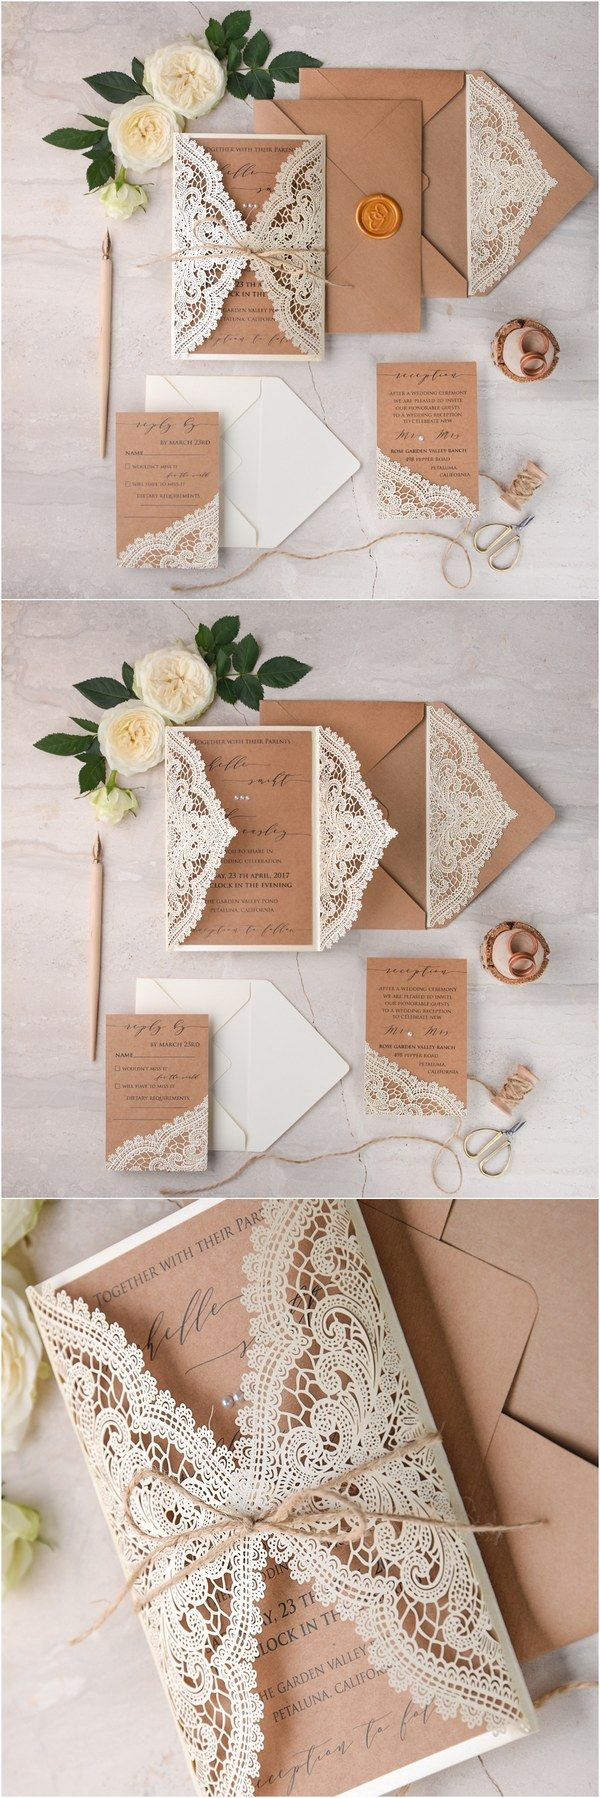 Laser Cut Wedding Invitations Diy We Love Laser Cut Wedding Invitations 4lovepolkadots L